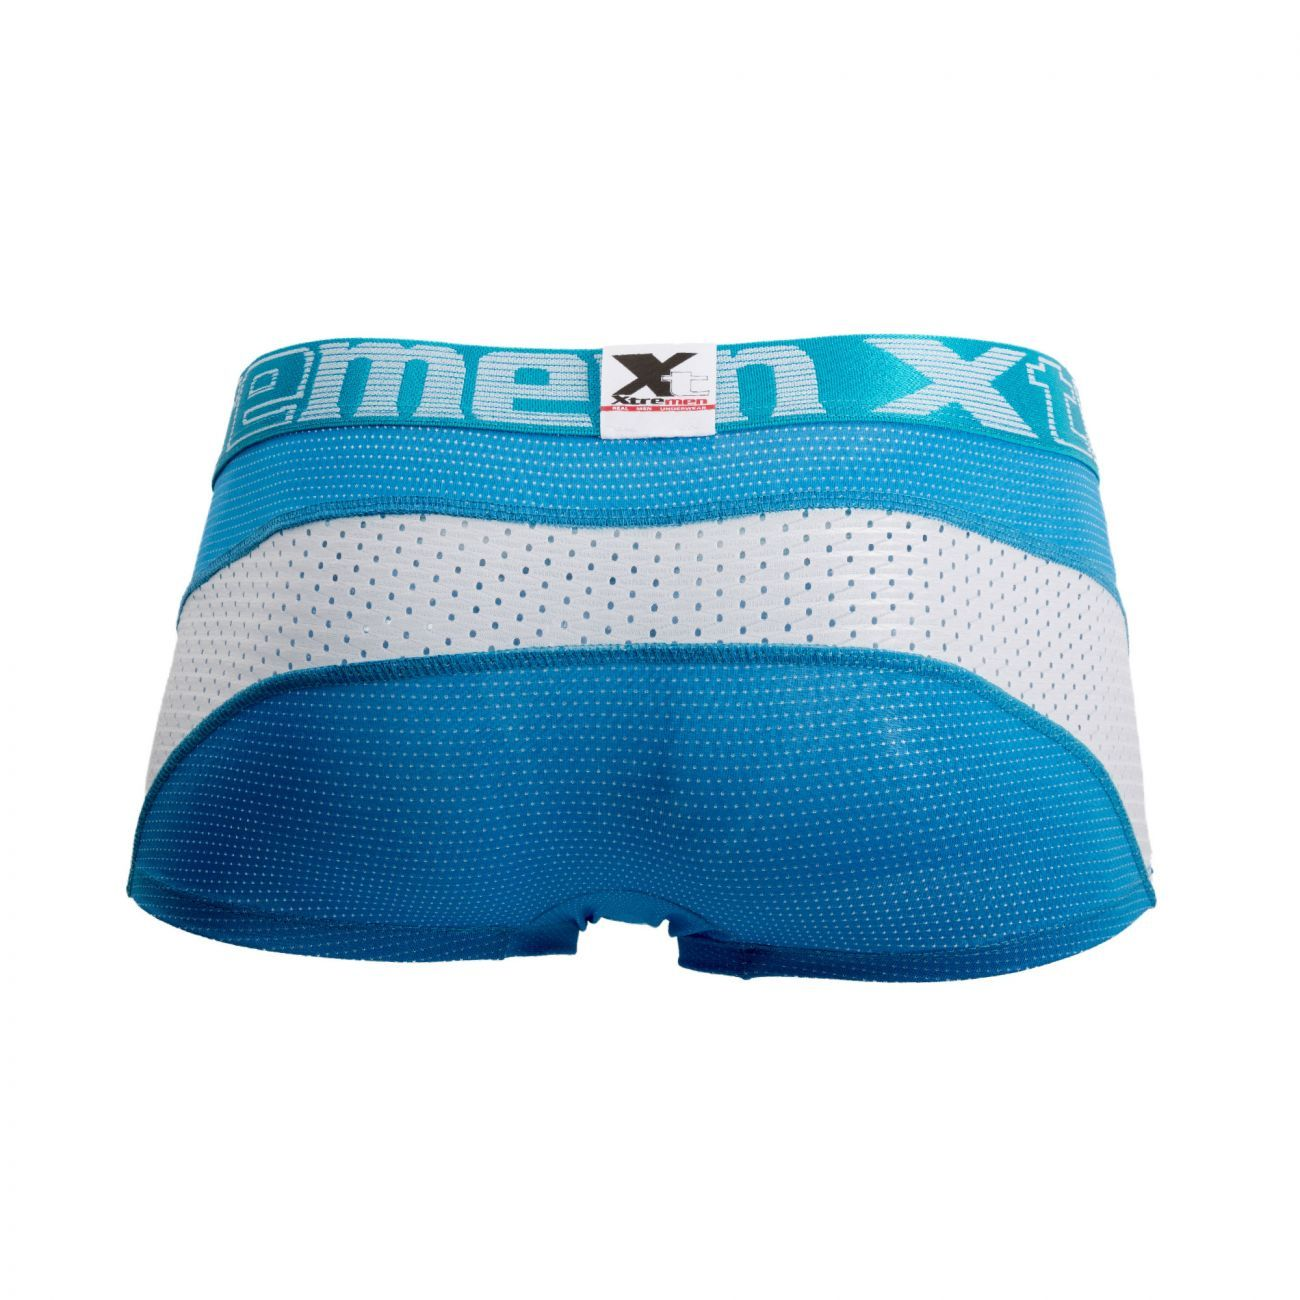 Xtremen 91030 Sports Mesh Boxer Briefs Color Turquoise